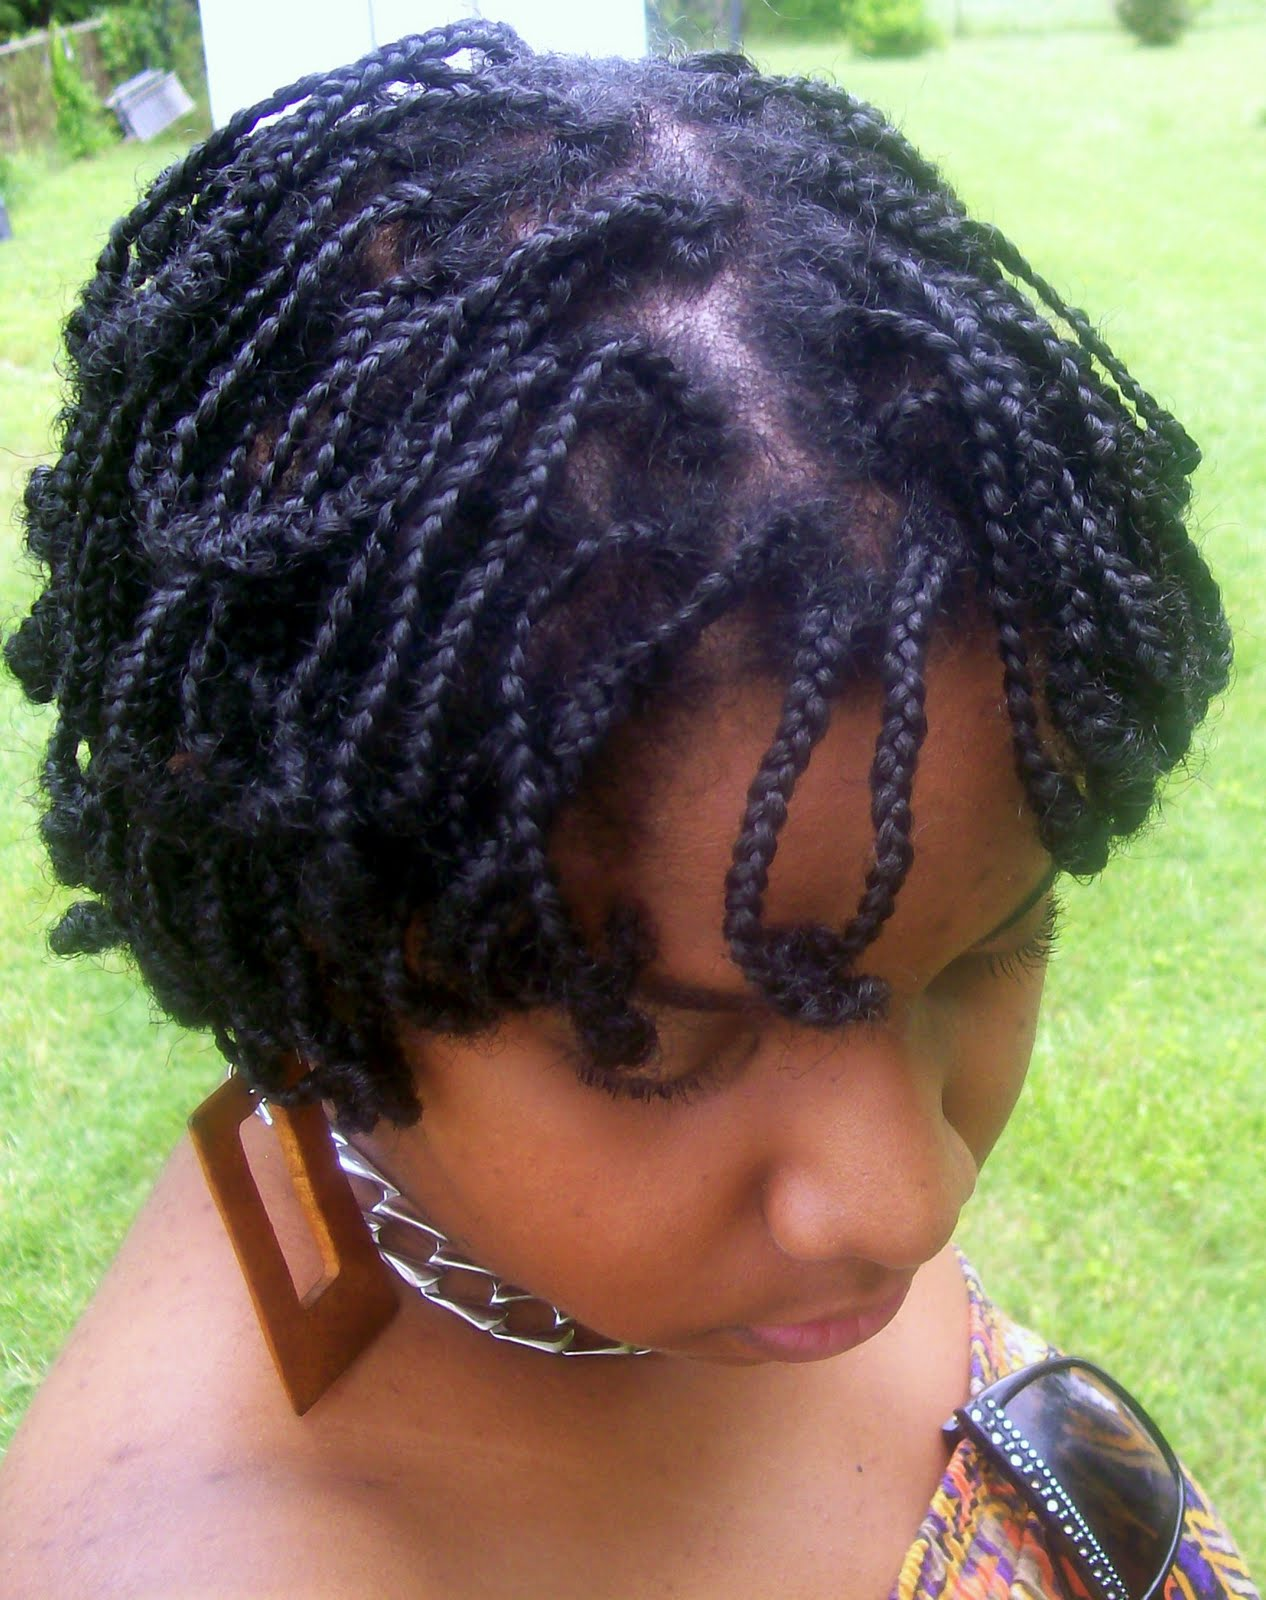 Box Braids With Curls At The End Worlds of curls curl activator